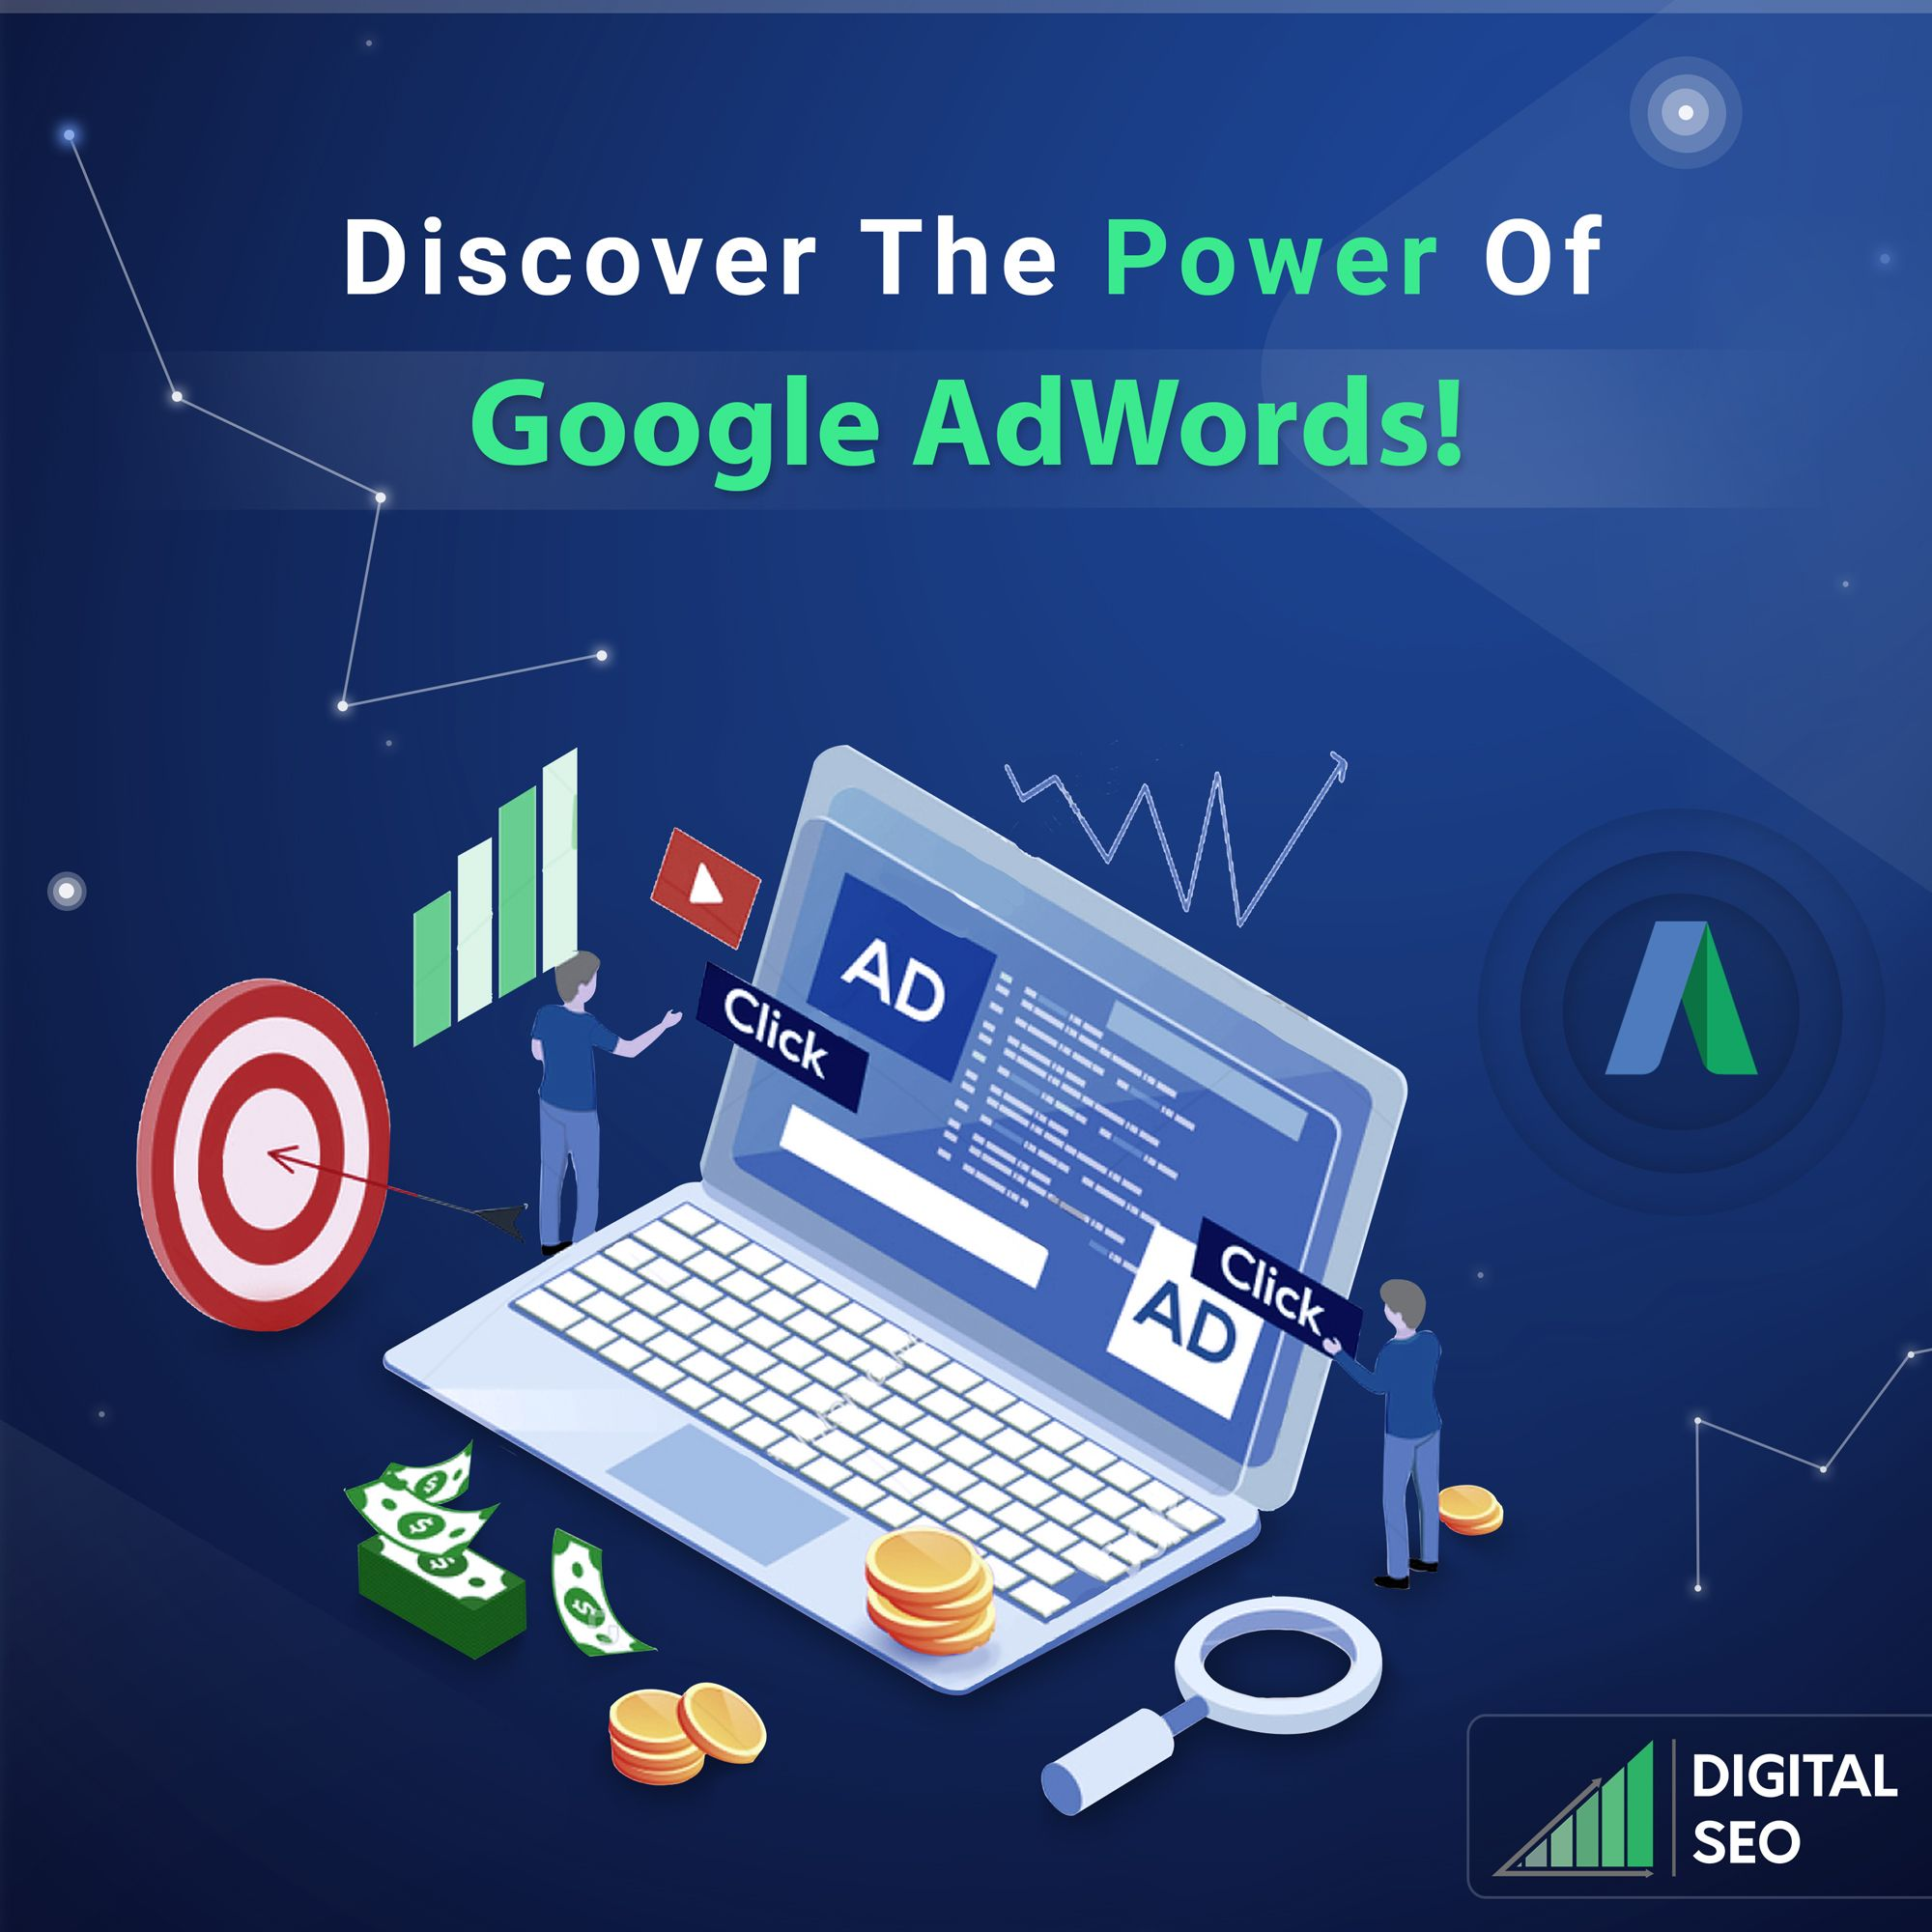 GoogleAdwords is a powerful advertising strategy for